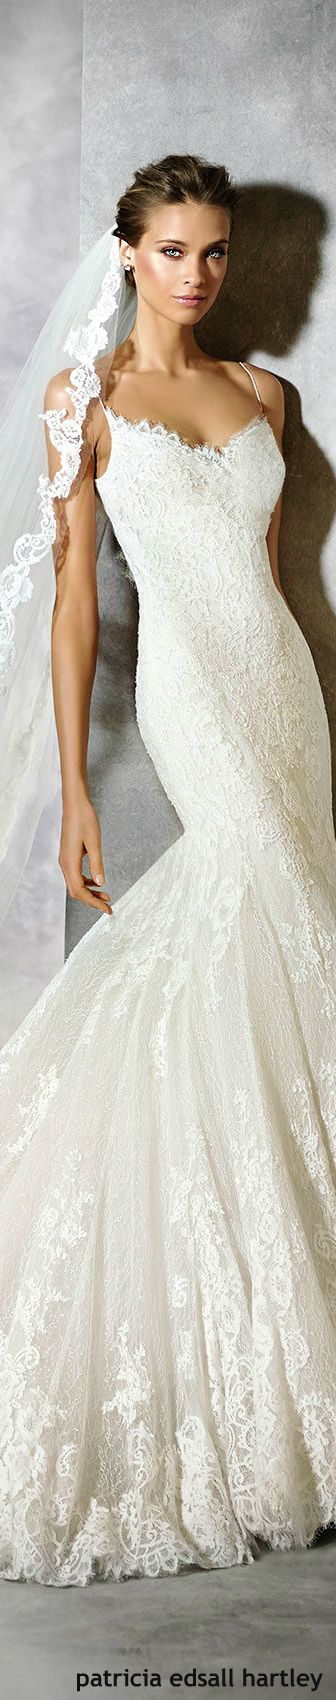 Pronovias 2016 Praciala Wedding Inspiration Pinterest Wedding Dress Wedding And Weddings